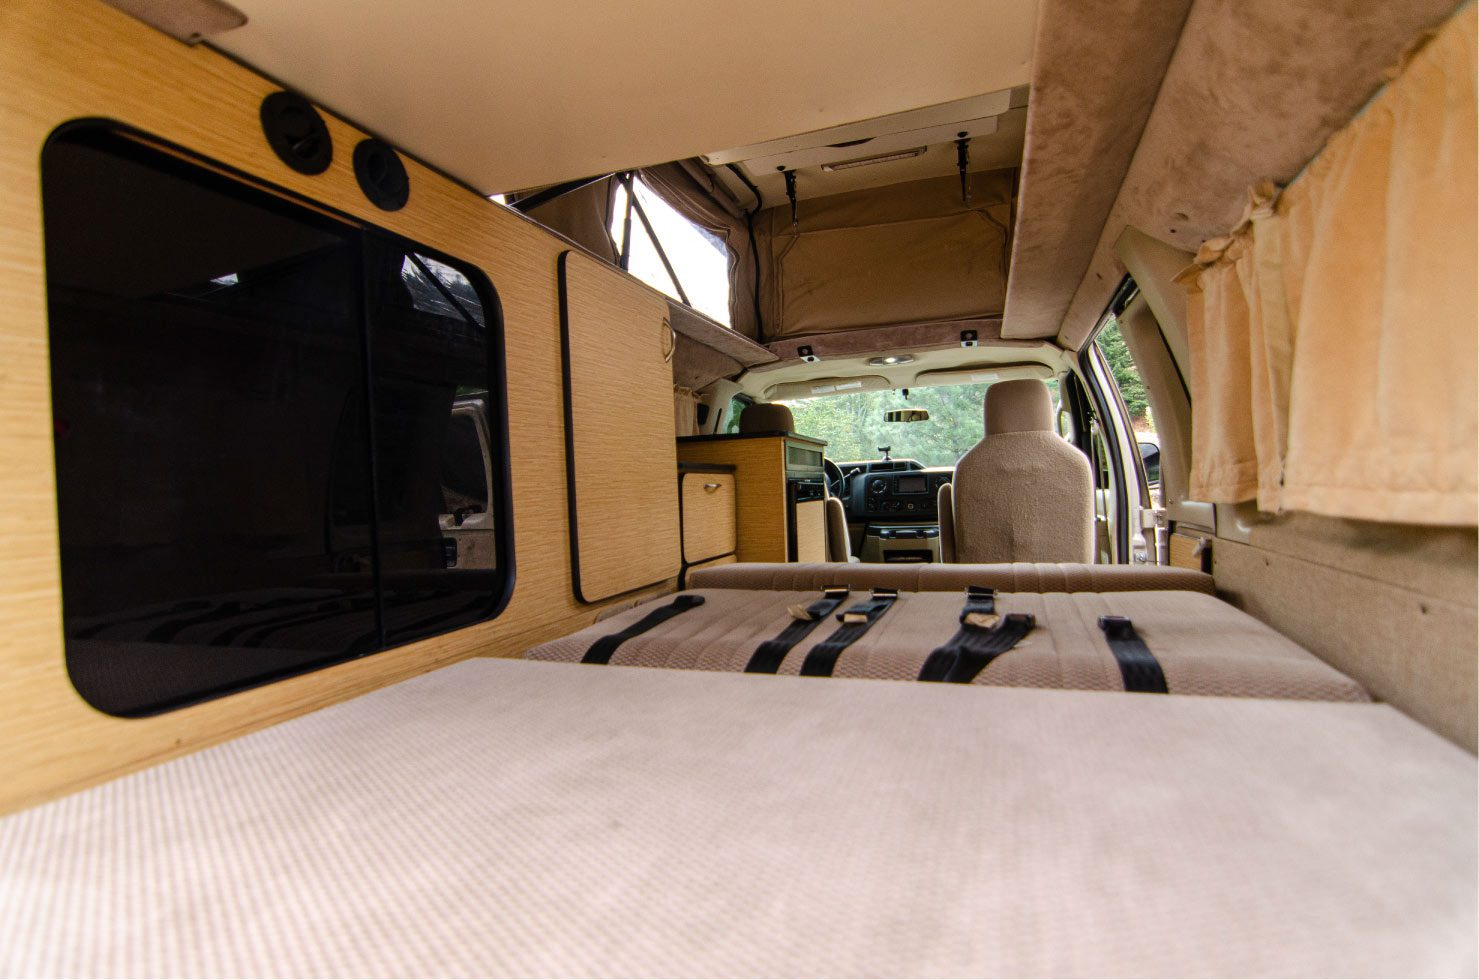 Full closet inside a Ford E-Series 4x4 Econoline Sportsmobile RB50 Layout Campervan conversion for sale built by Van Specialties